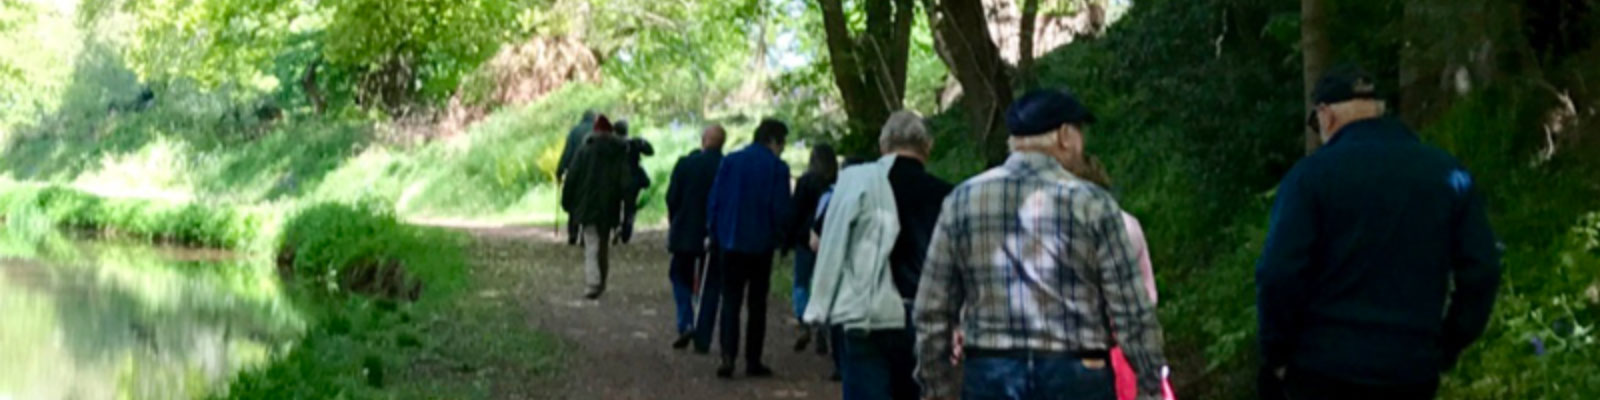 U3A members walk a path through a wooded area by a lake